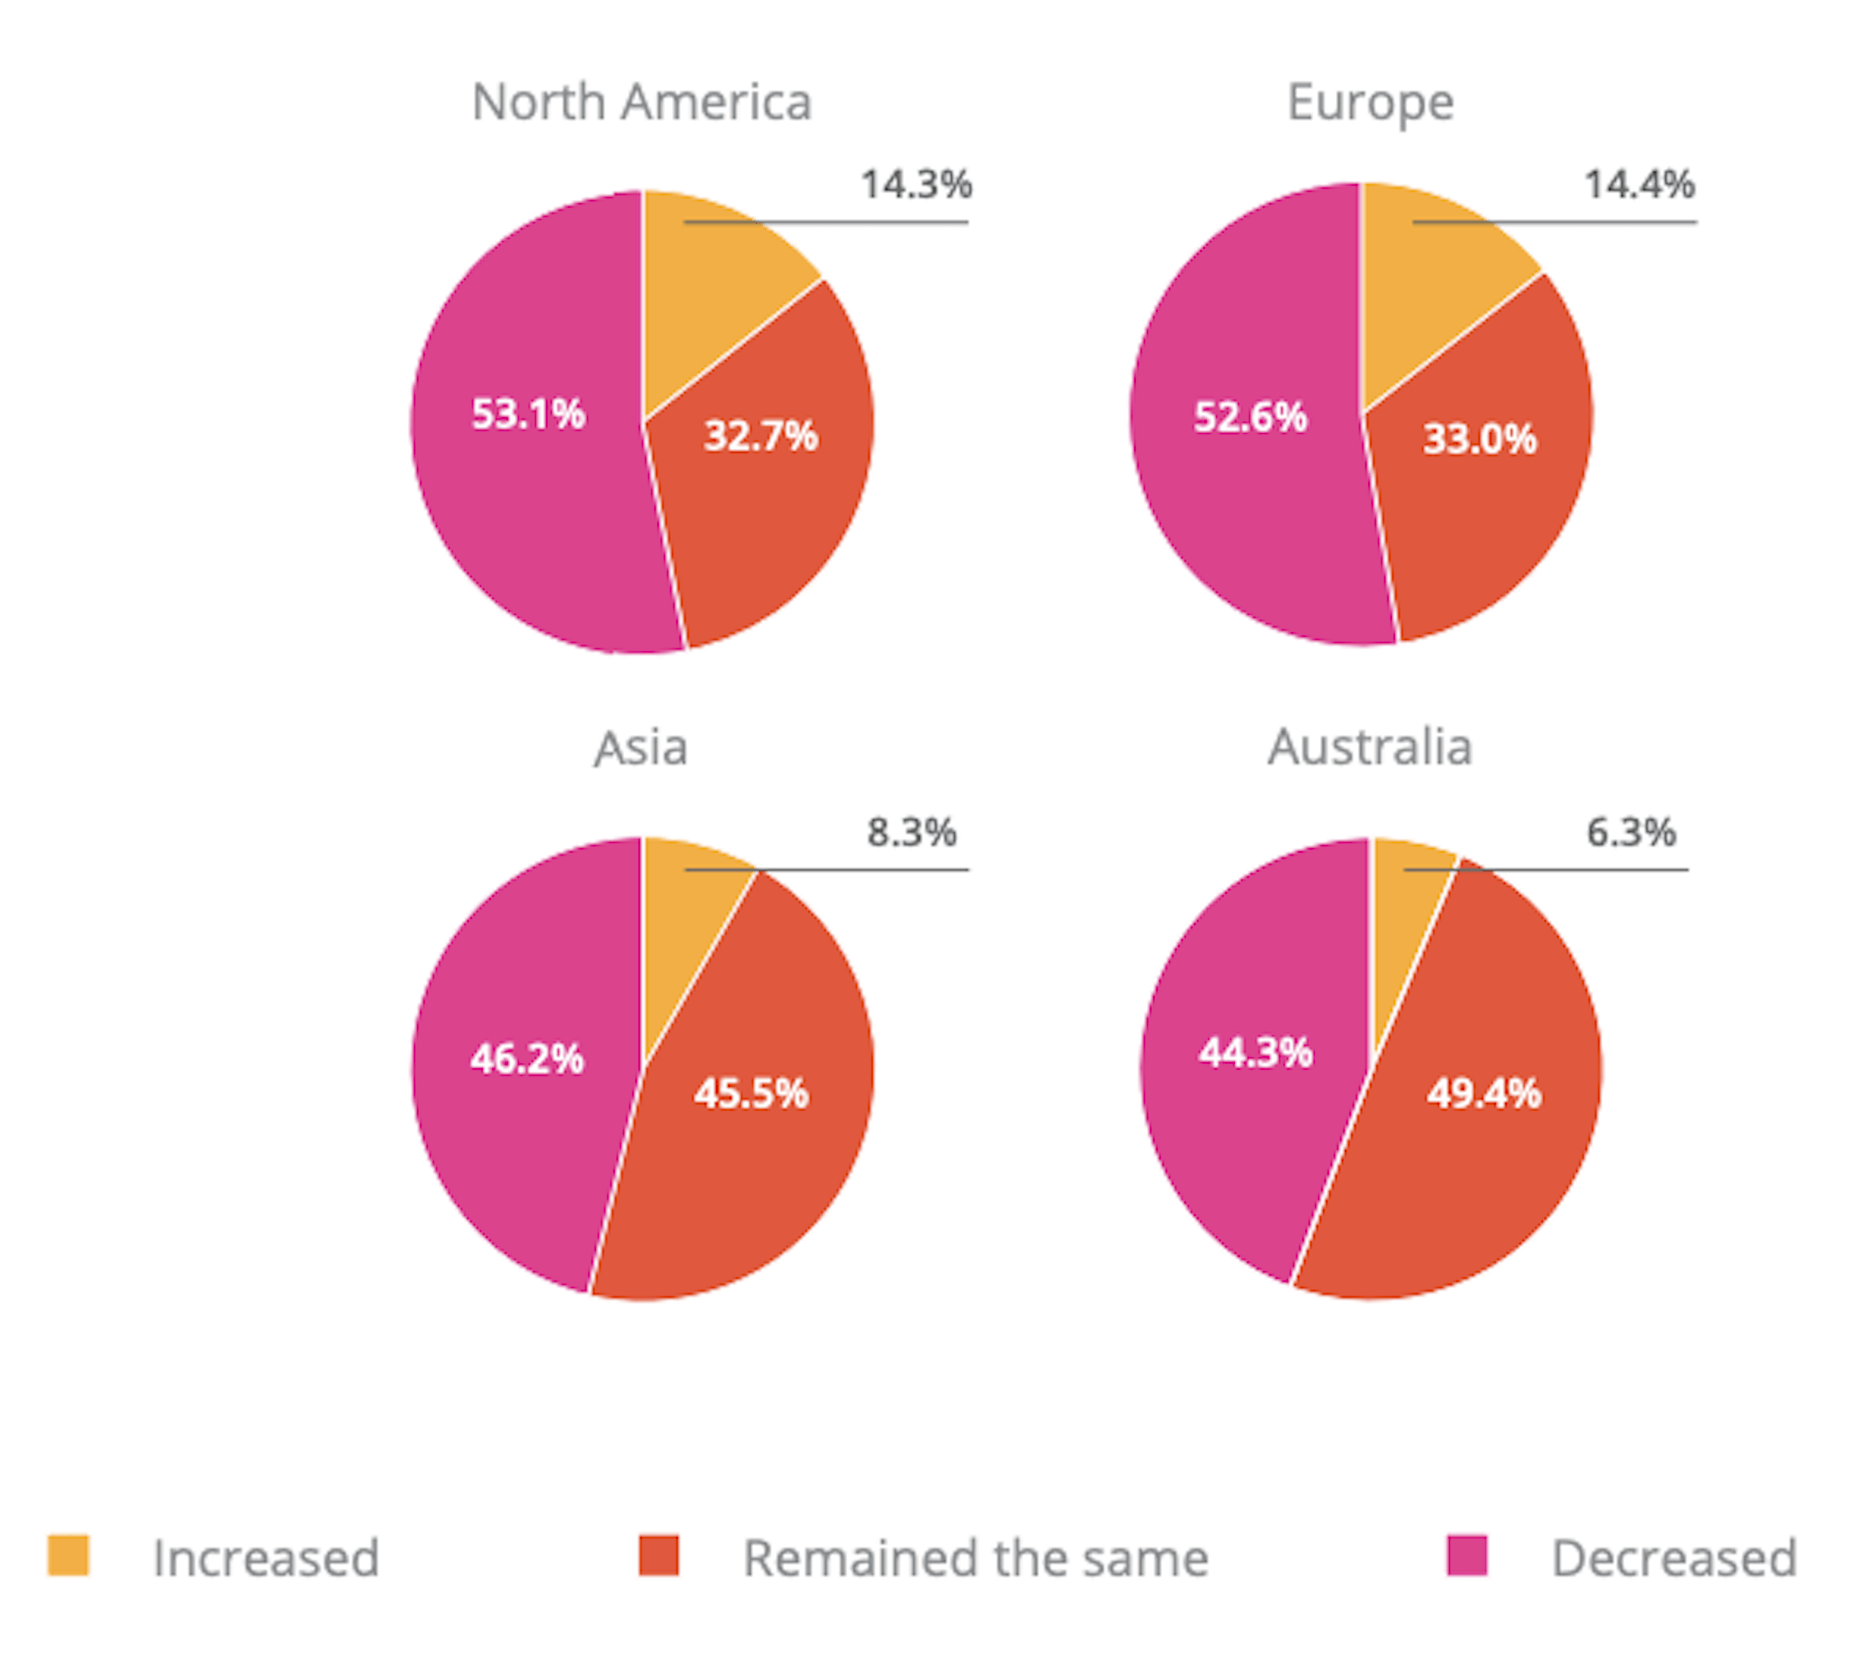 Payoneer freelancer report compares the COVID-19 recovery among different global regions